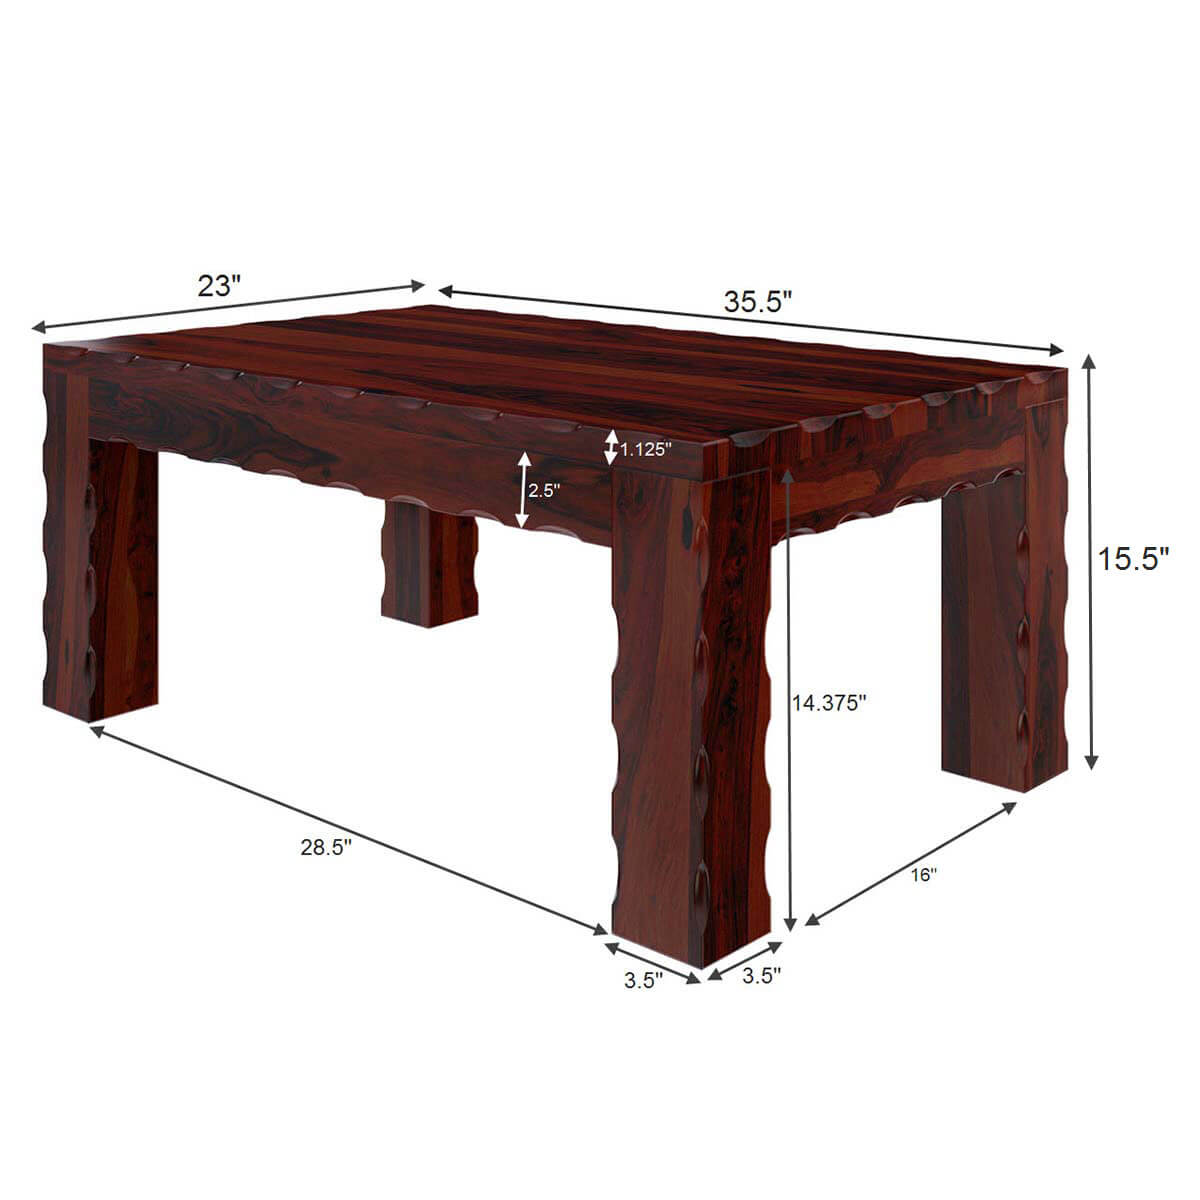 Yakima contemporary style solid wood large rustic coffee table for Large wooden coffee tables